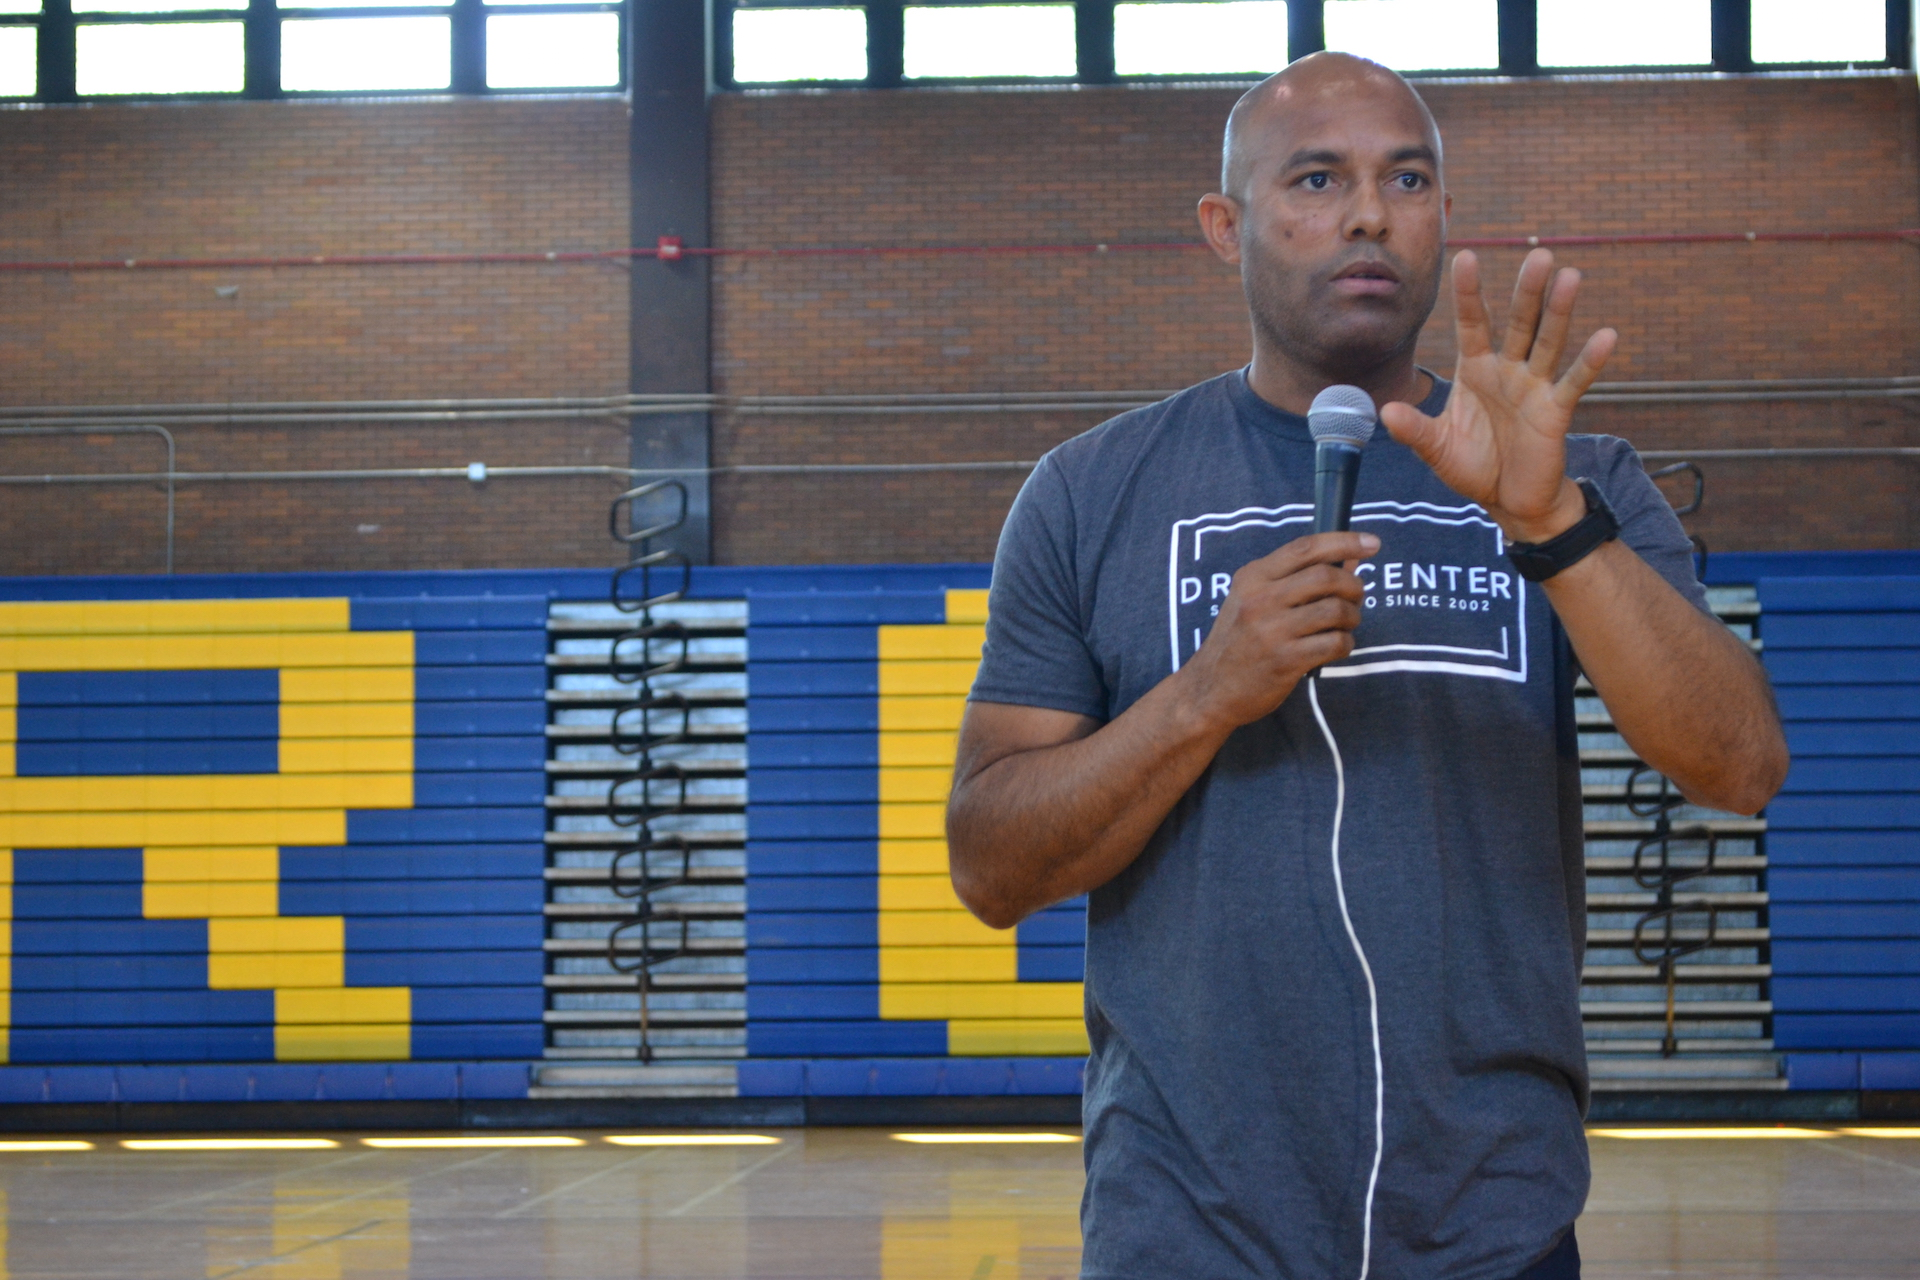 Former New York Yankees closer Mariano Rivera spent more than an hour Tuesday talking with CPS students at Clemente High School. (Matt Masterson / Chicago Tonight)